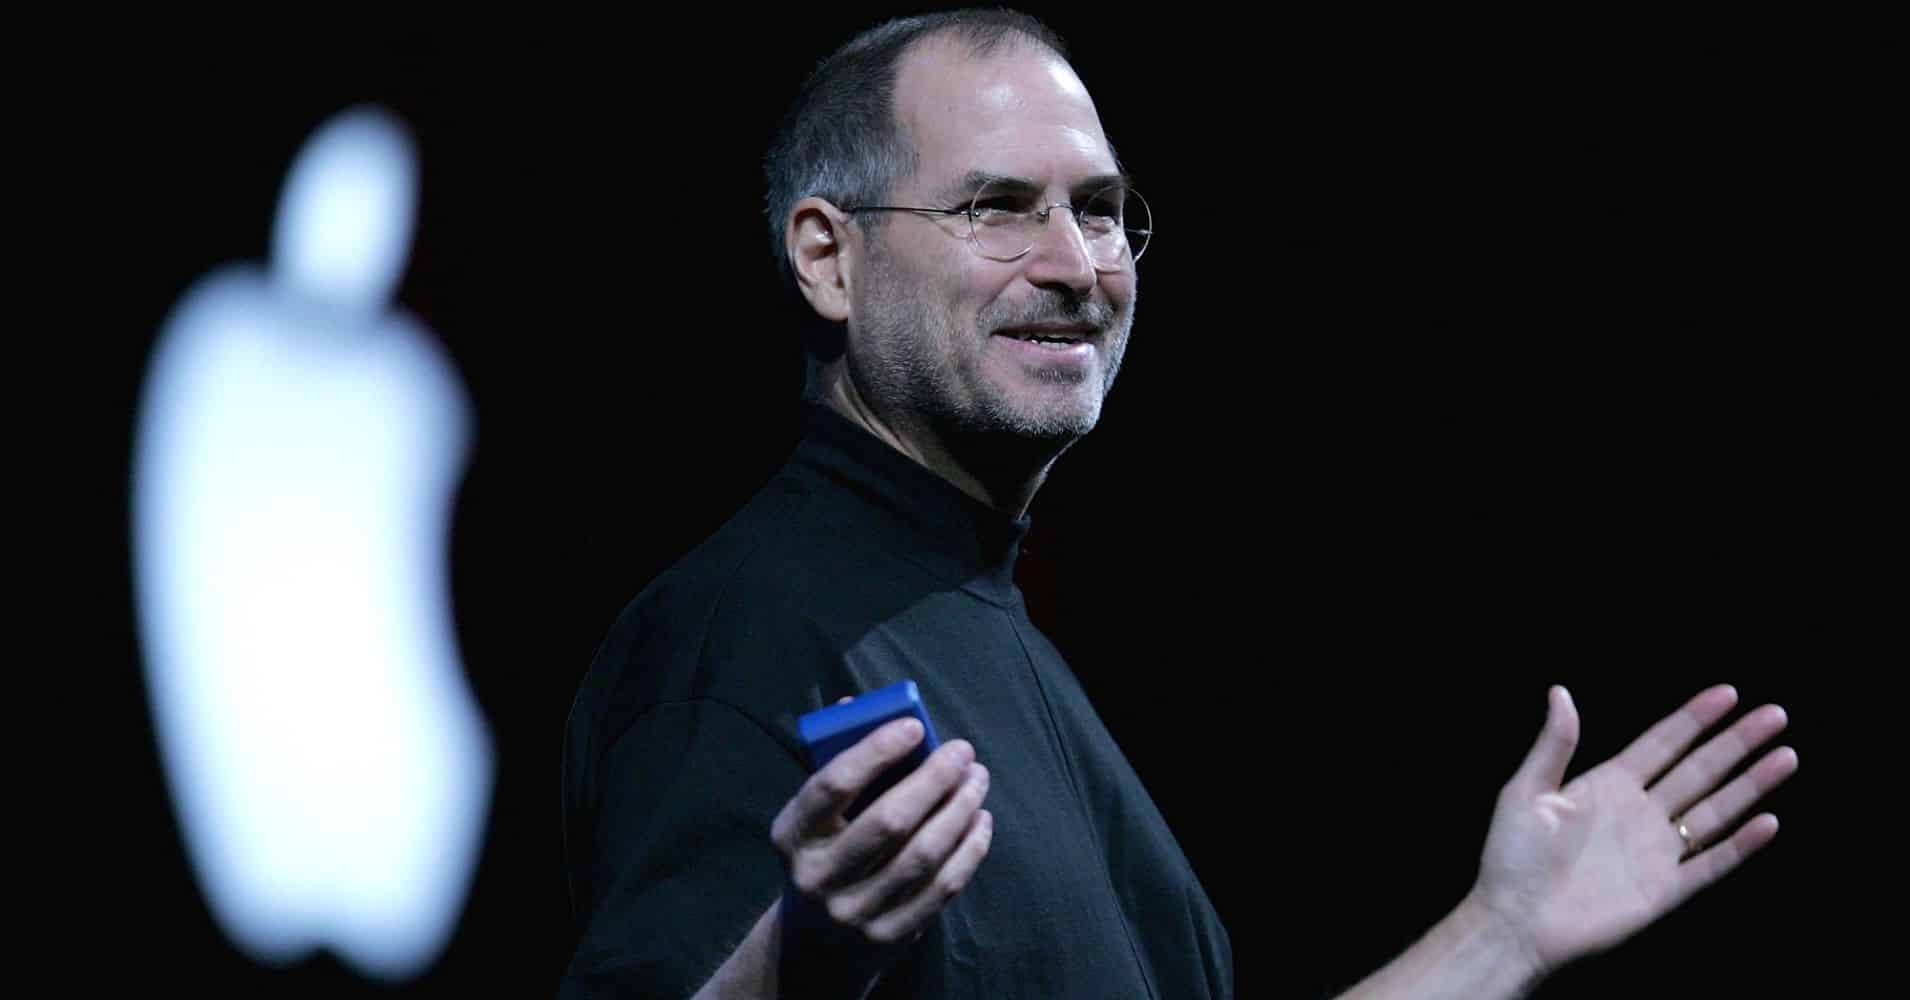 Steve Jobs on a stage at an Apple event